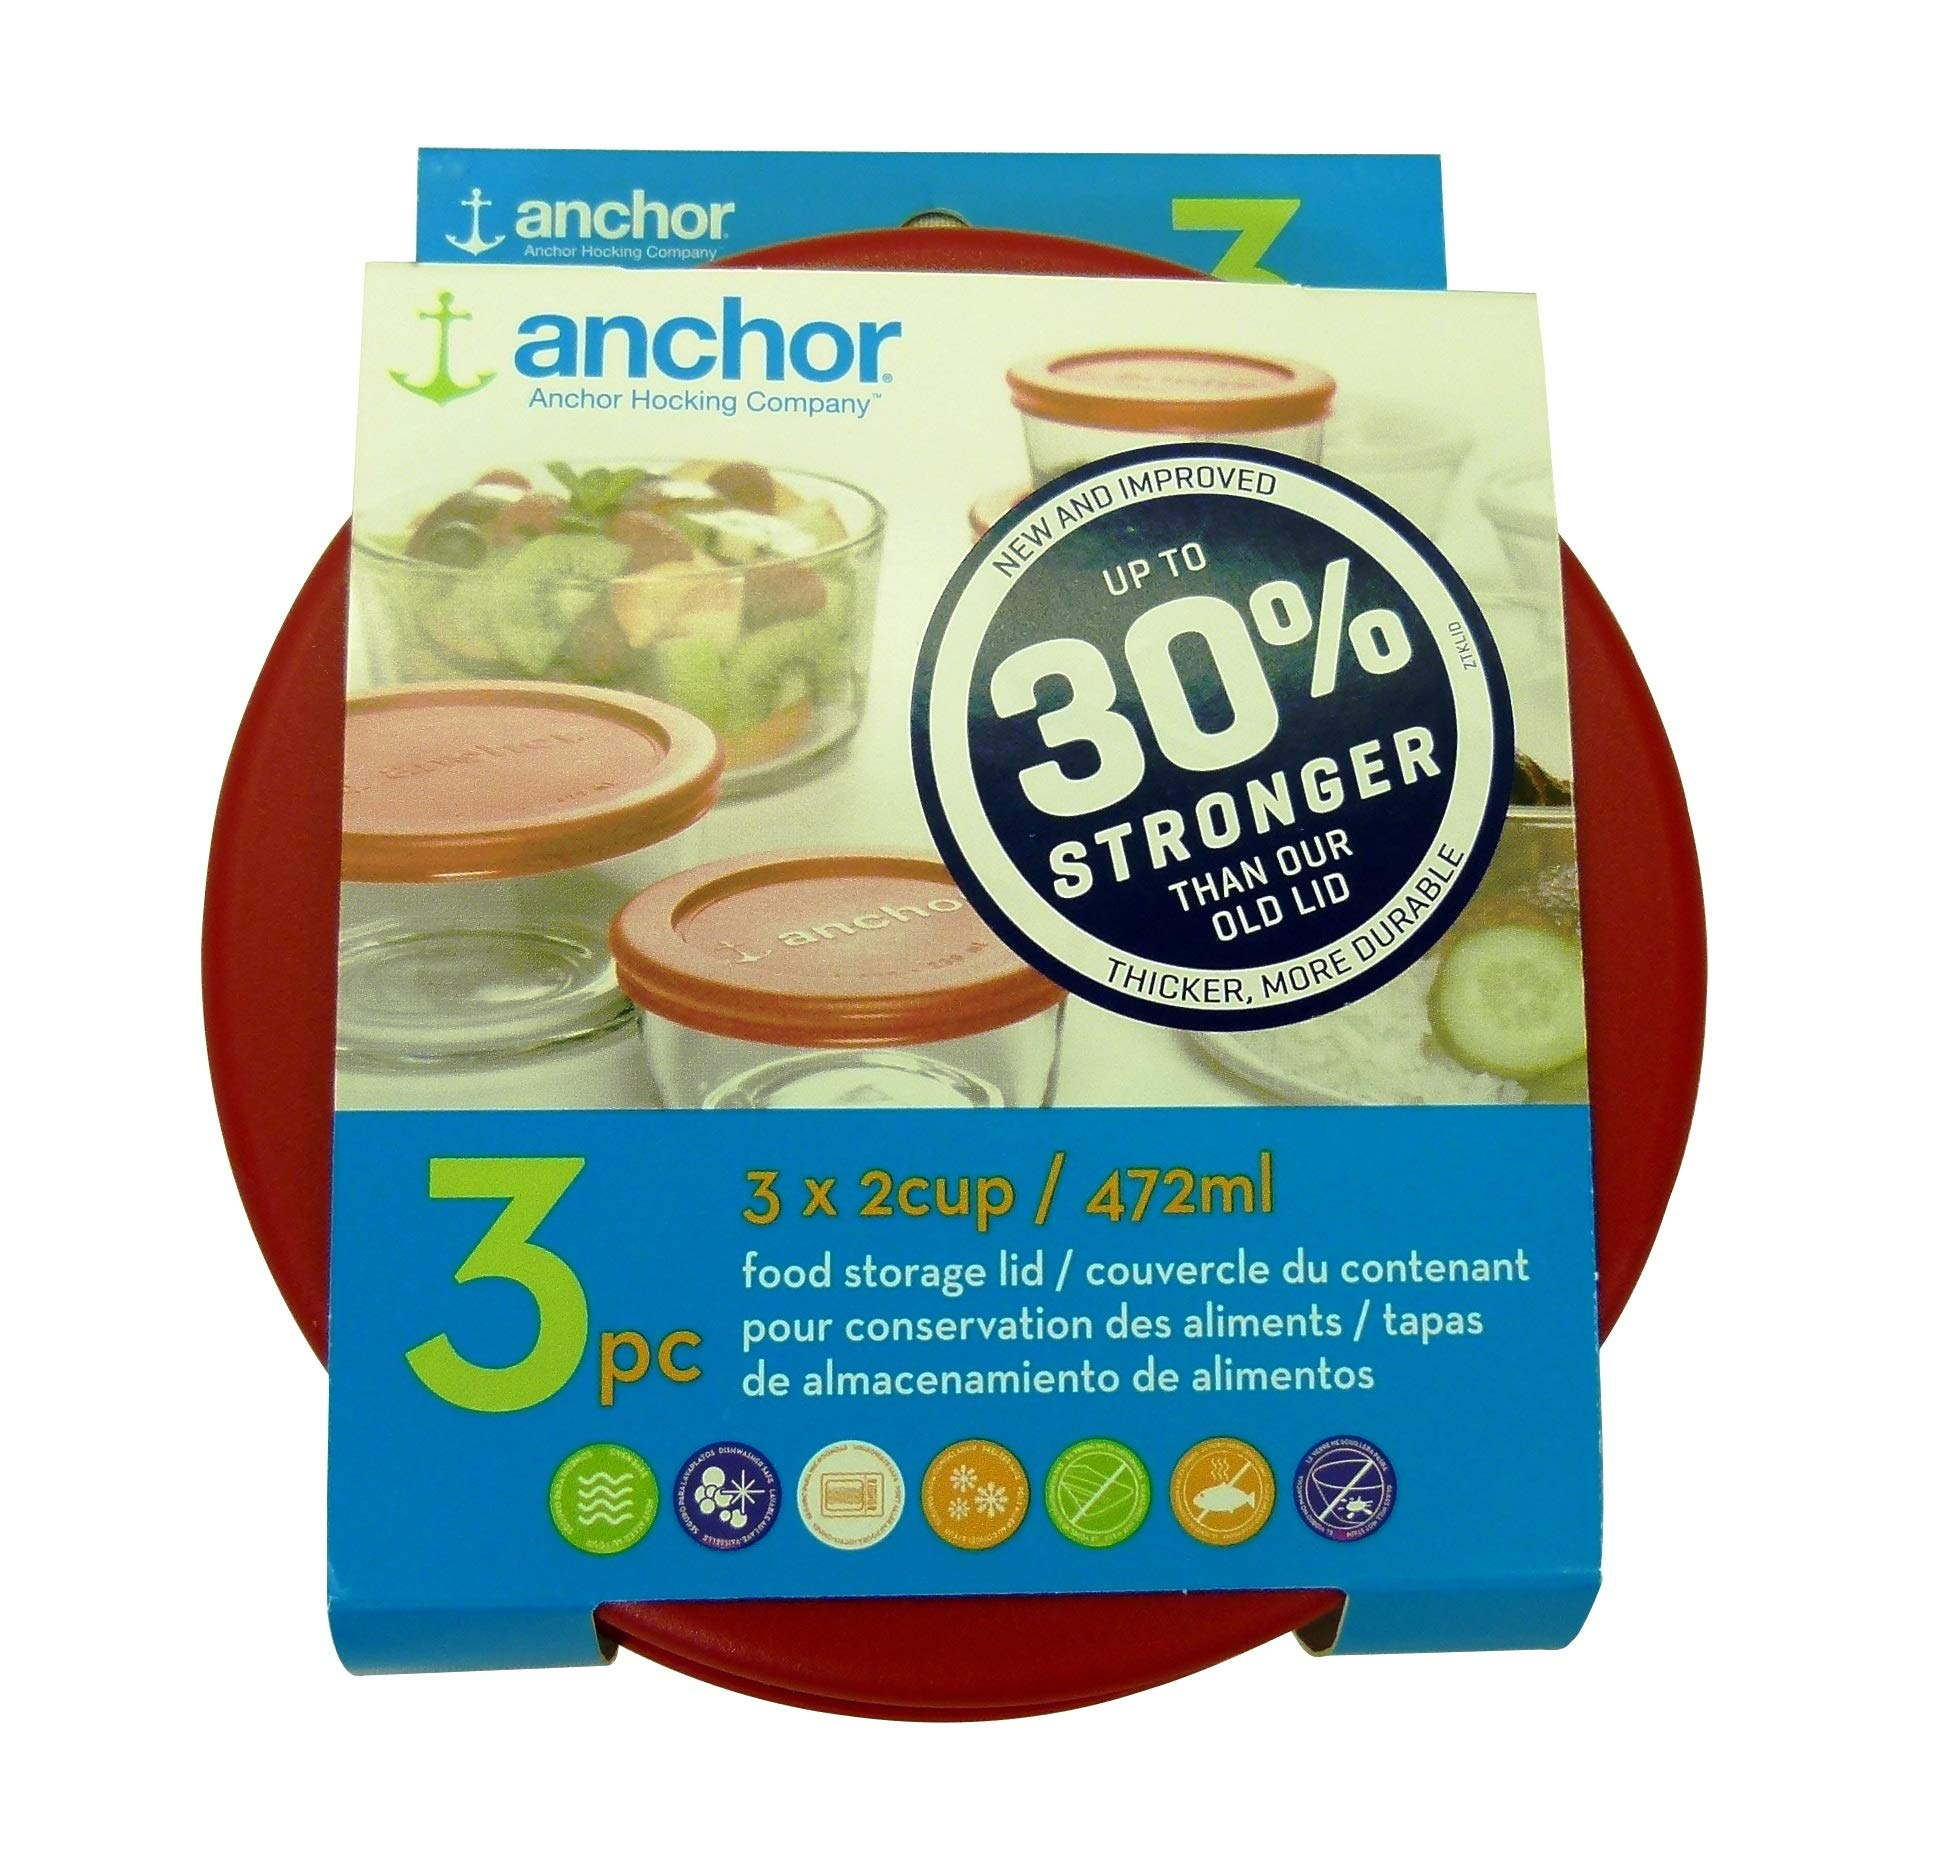 Anchor Hocking Improved 30% Stronger Replacement Lid 2 Cup / 472 ml / 0.5 qt, Set of 3 lids, red Round by Anchor Hocking